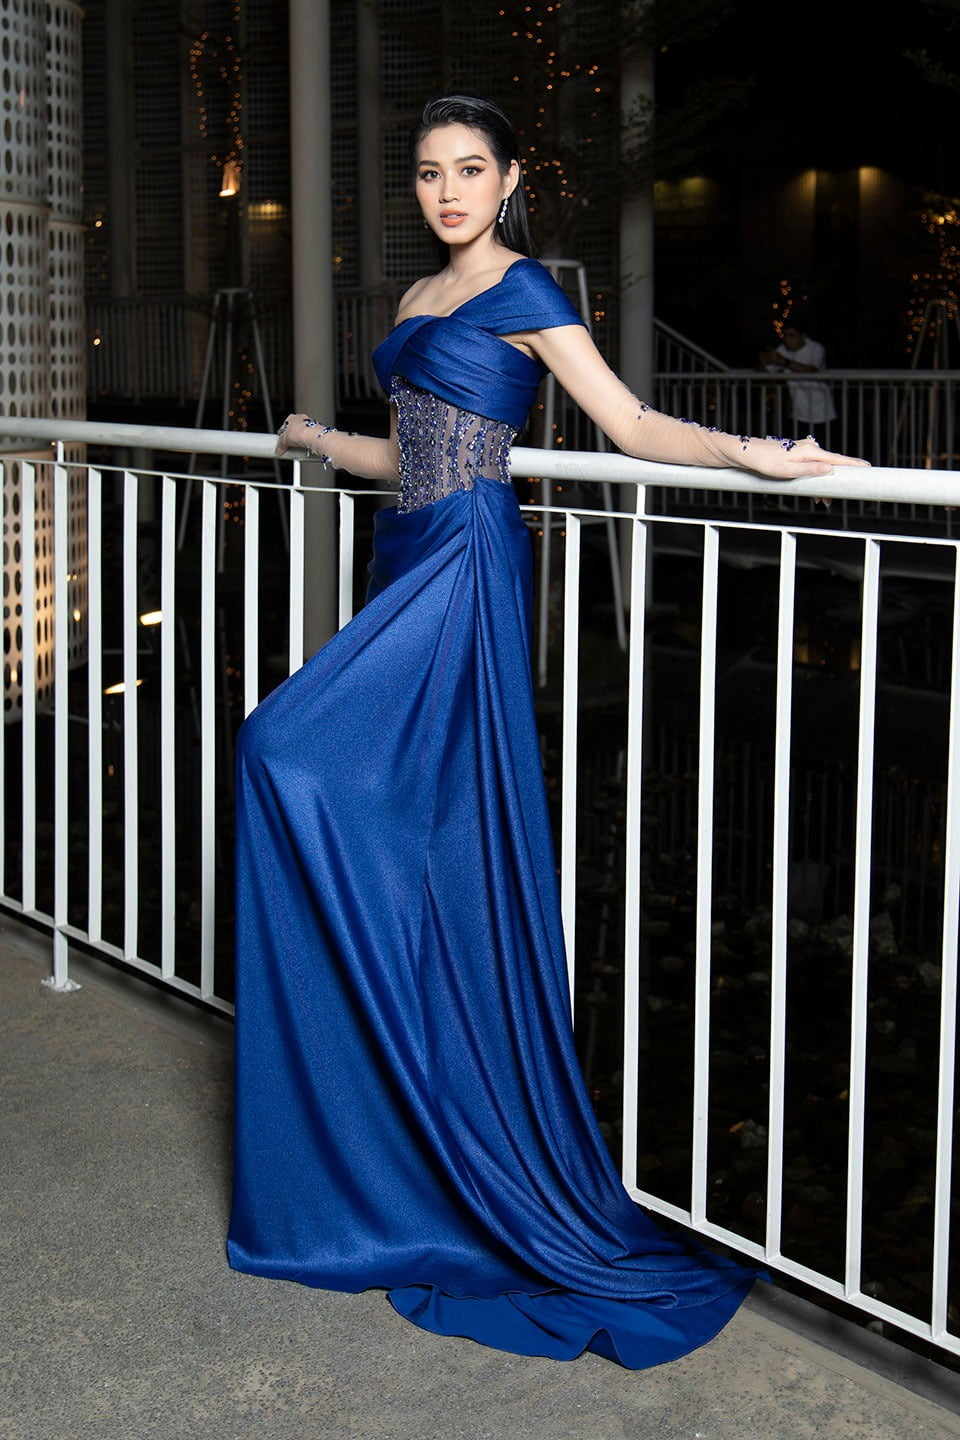 Bridal party dress, One-piece garment, Human body, Flash photography, Blue, Purple, Sleeve, Waist, Gown